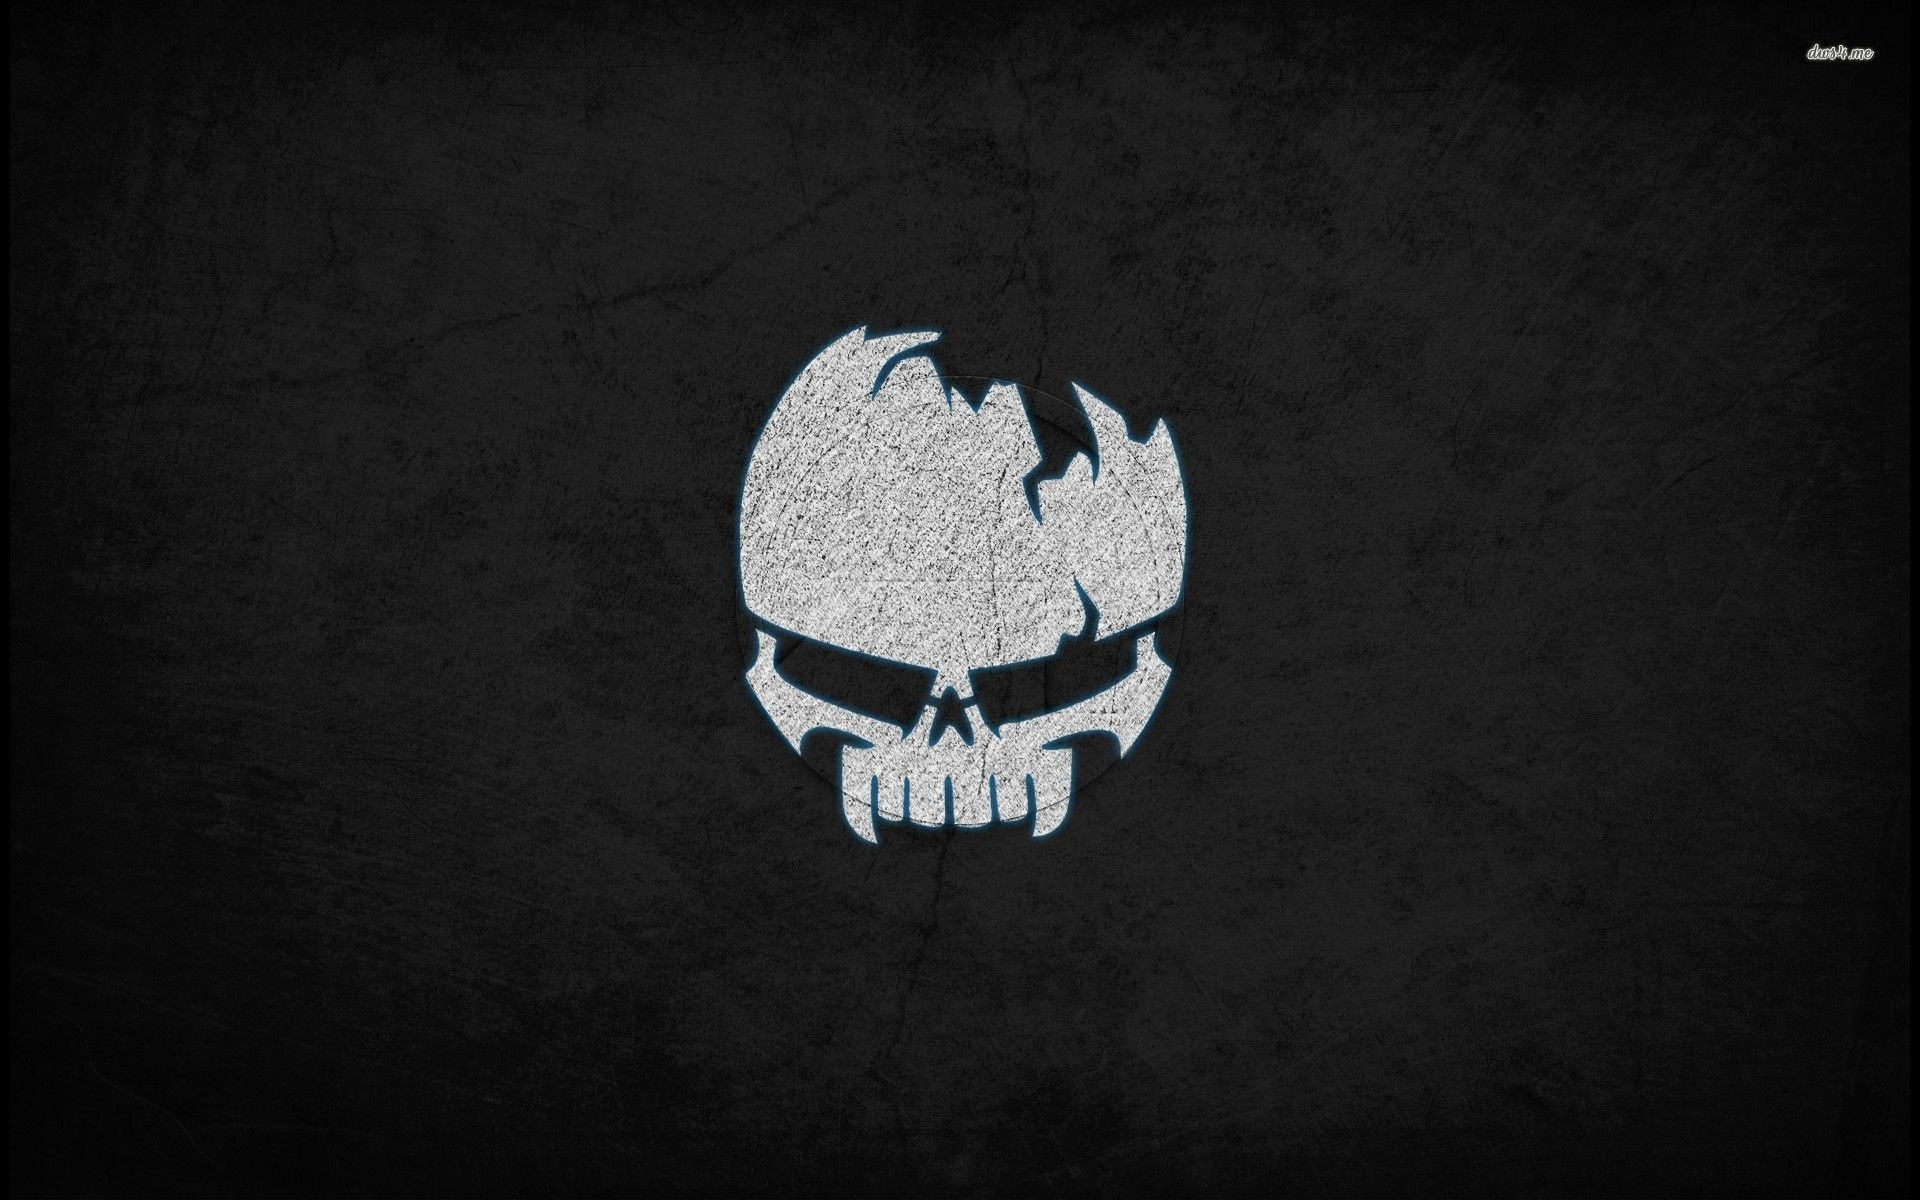 1920x1200 HD Skull Wallpapers - Wallpapers Browse